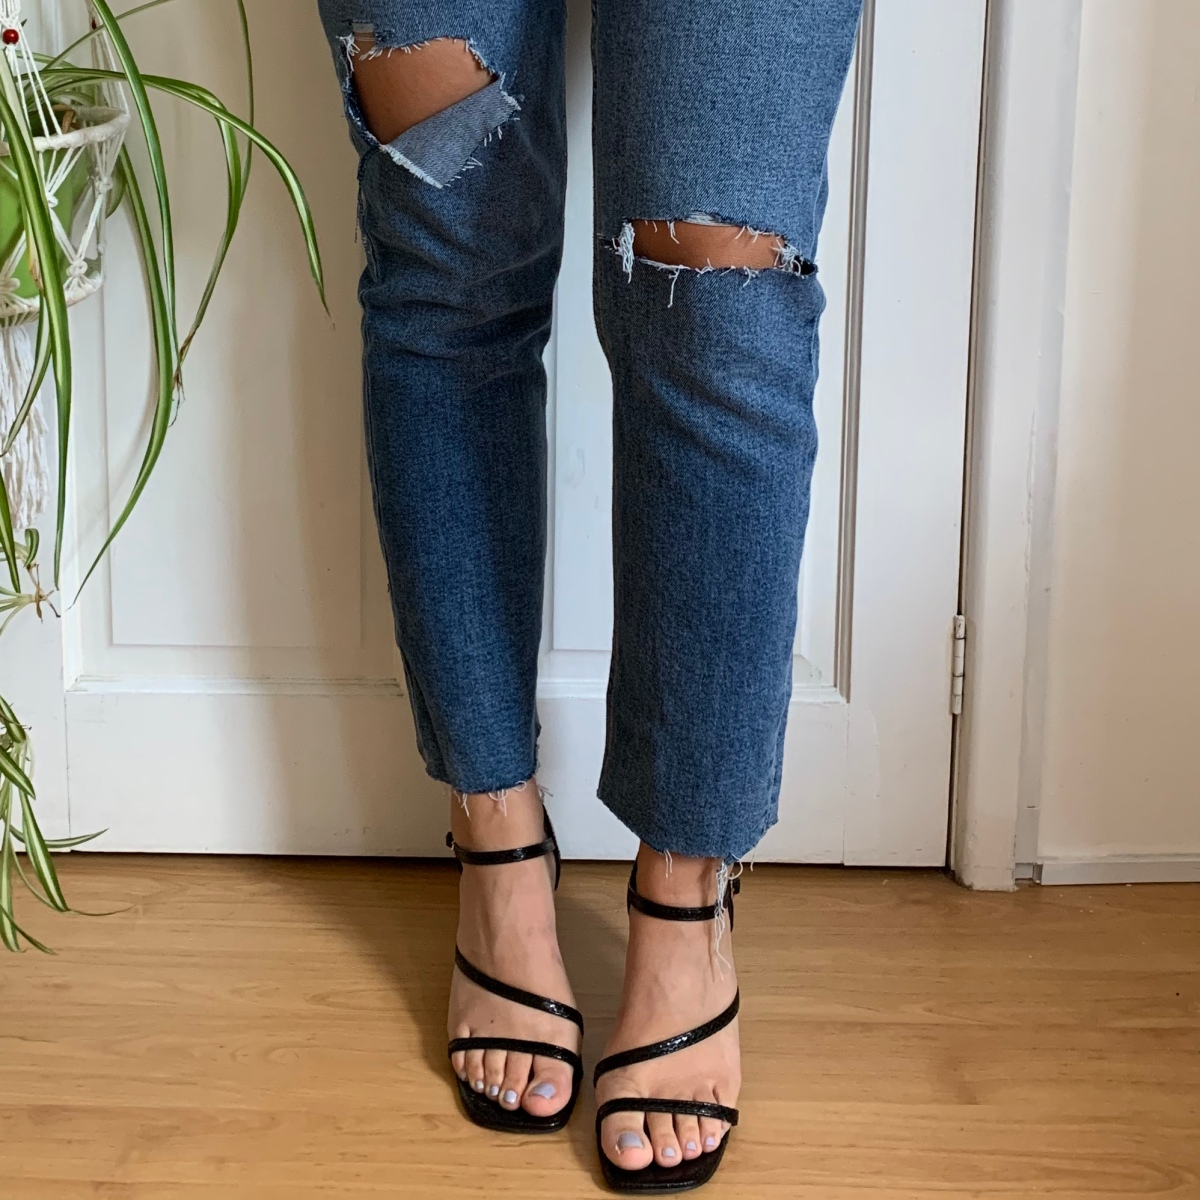 Rachel recommends diy ripped jeans